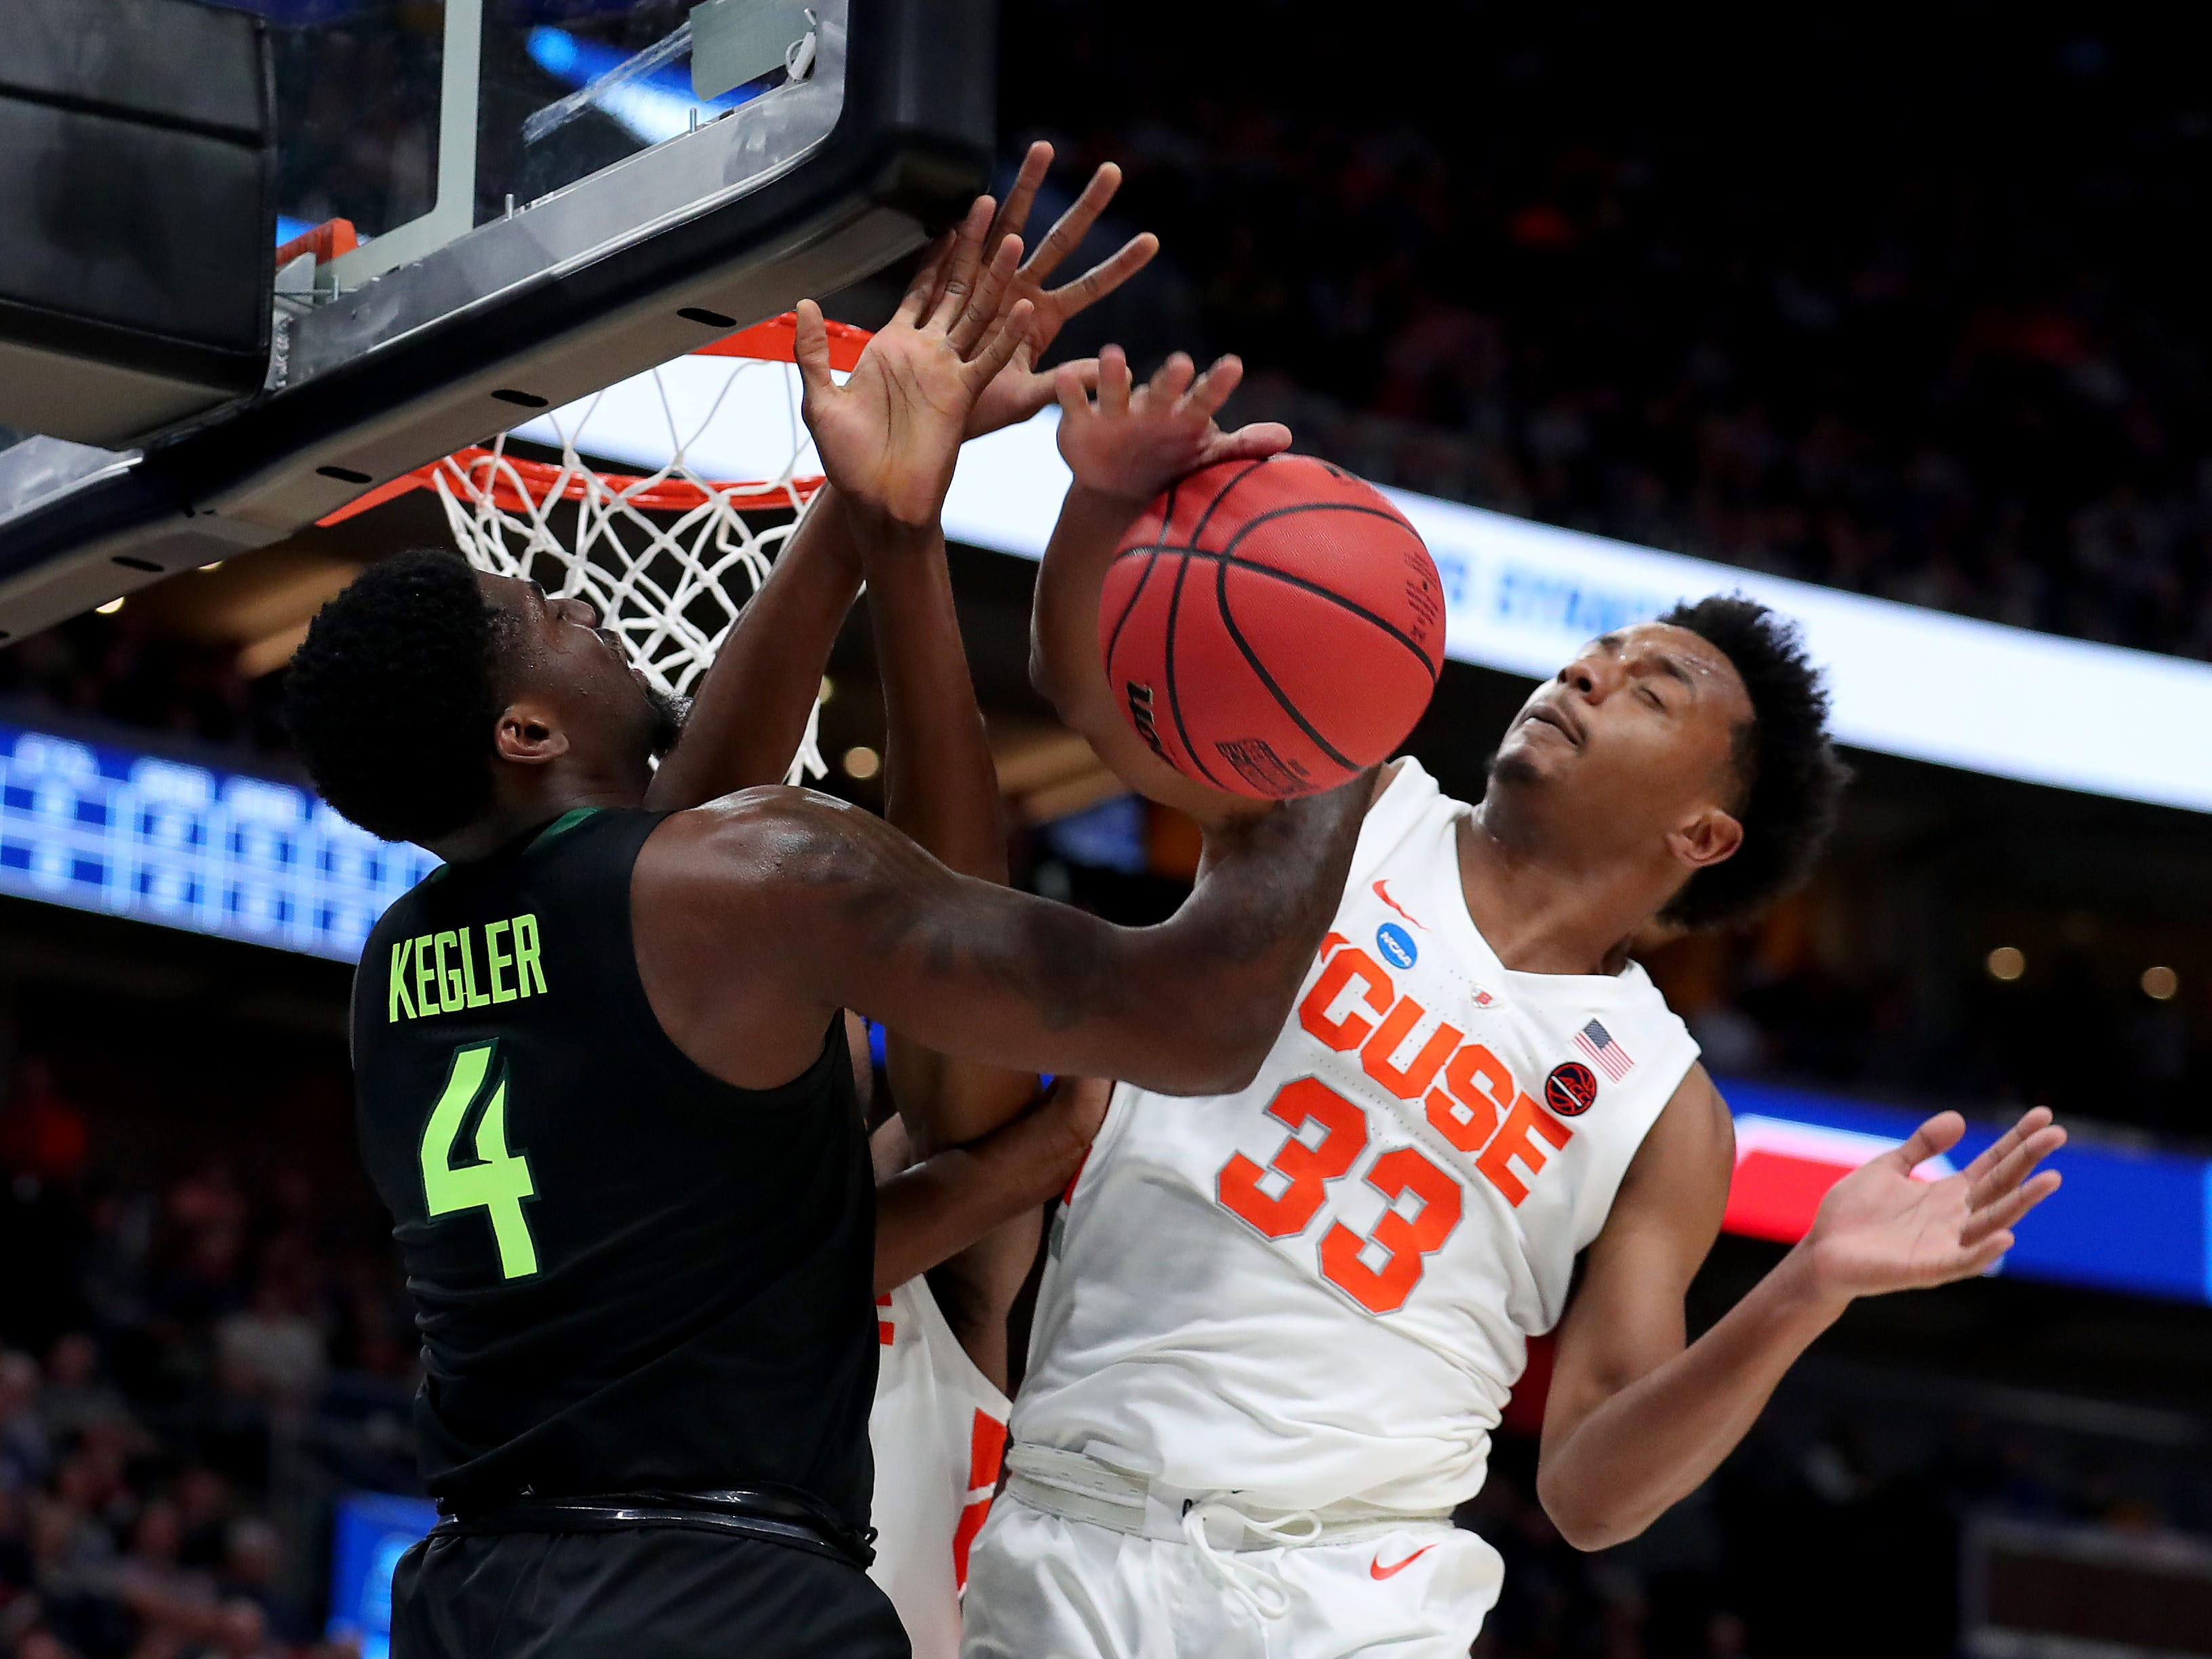 Mario Kegler of the Baylor Bears defends  against Elijah Hughes of the Syracuse Orange during the first half in the first round of the 2019 NCAA Men's Basketball Tournament at Vivint Smart Home Arena on March 21, 2019 in Salt Lake City, Utah.